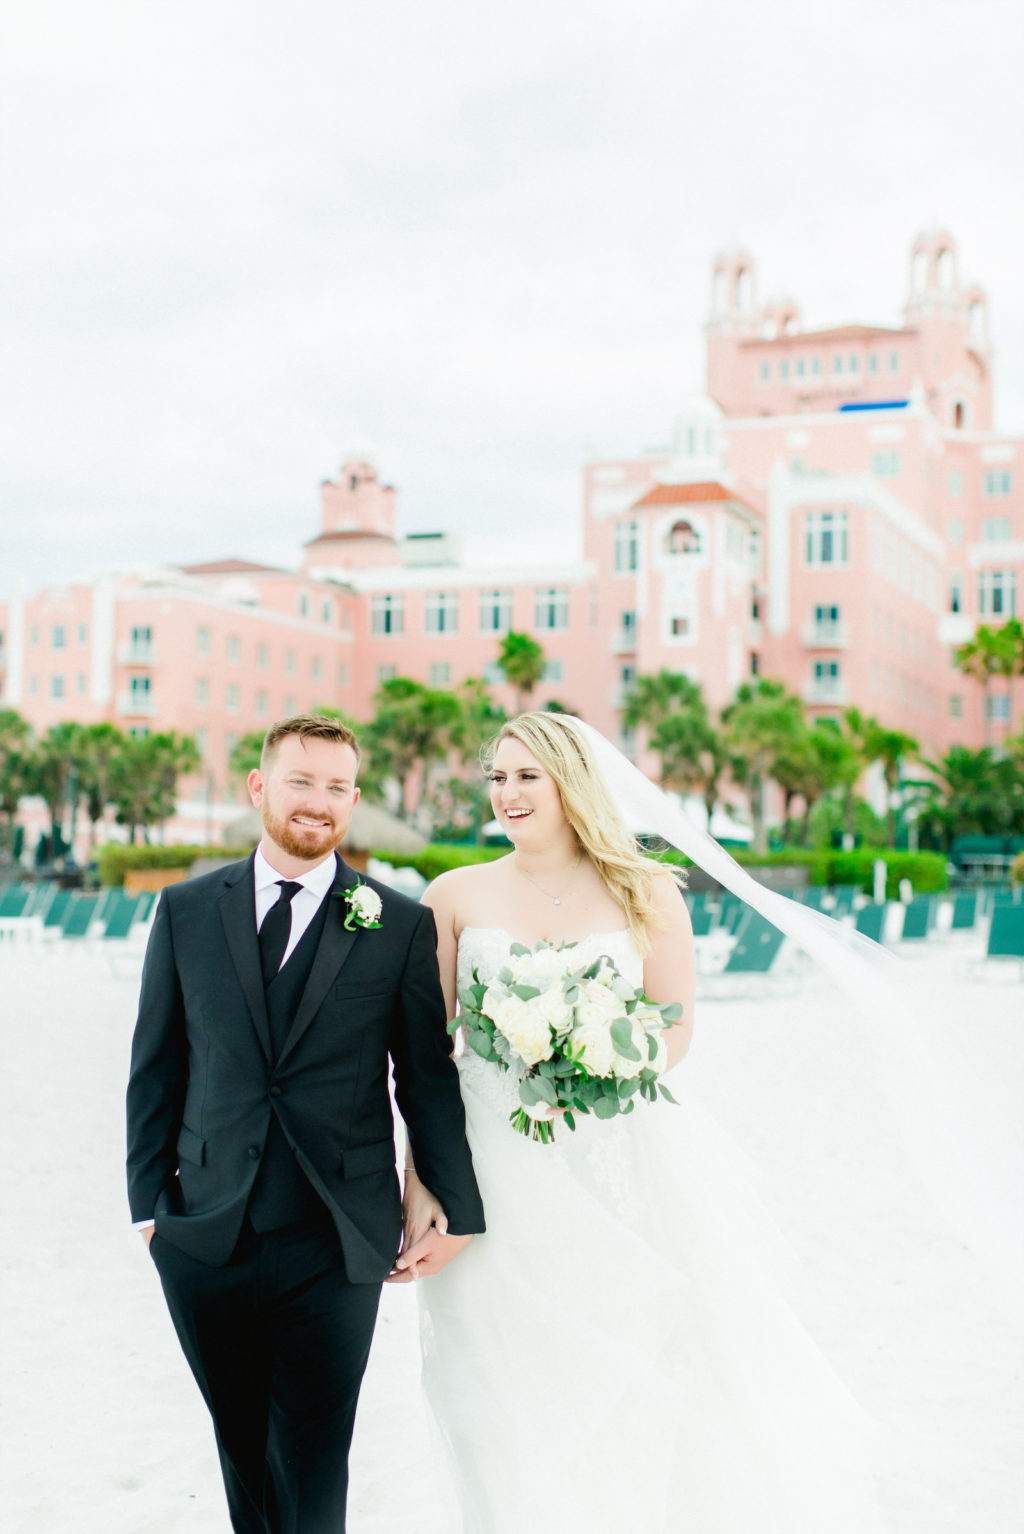 Lace Wedding Dress Bridal Gown with Long Cathedral Veil | Bride and Groom Outdoor Hotel Beach Portraits | St Pete Beach Wedding Venue The Don Cesar | Classic Greenery White Flowers Bouquet | Groom Wearing Classic Black Suit Tux | Pink Palace